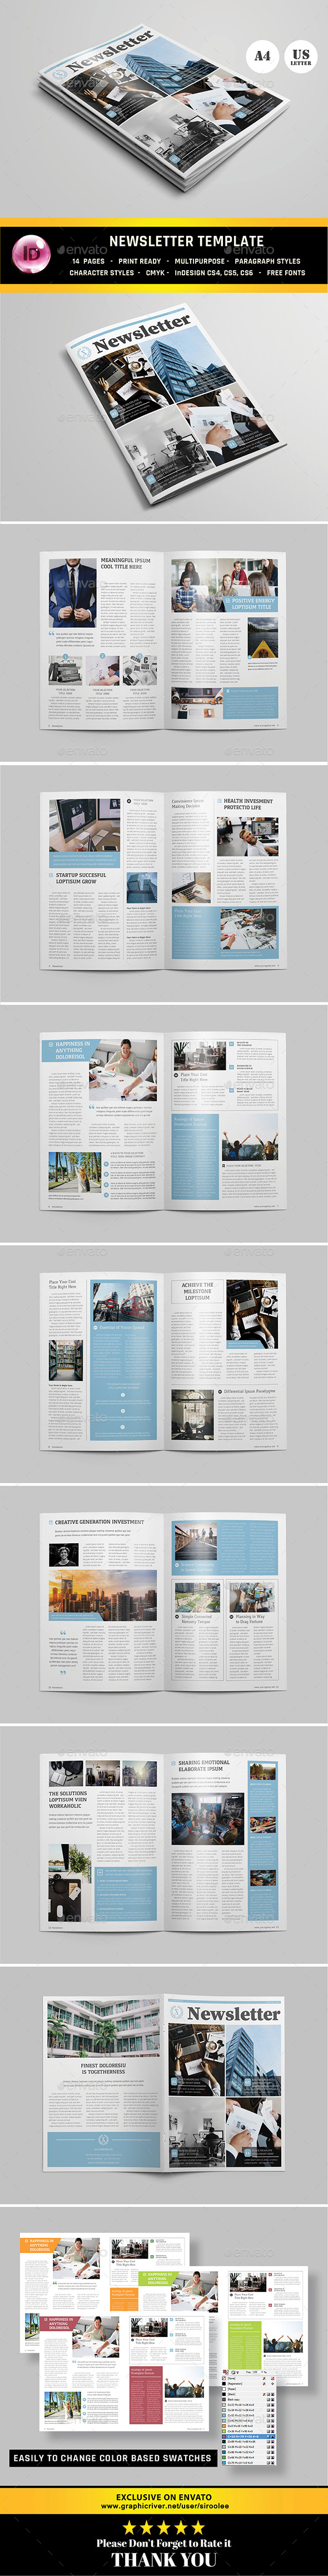 Multipurpose Newsletter v.04 - Newsletters Print Templates